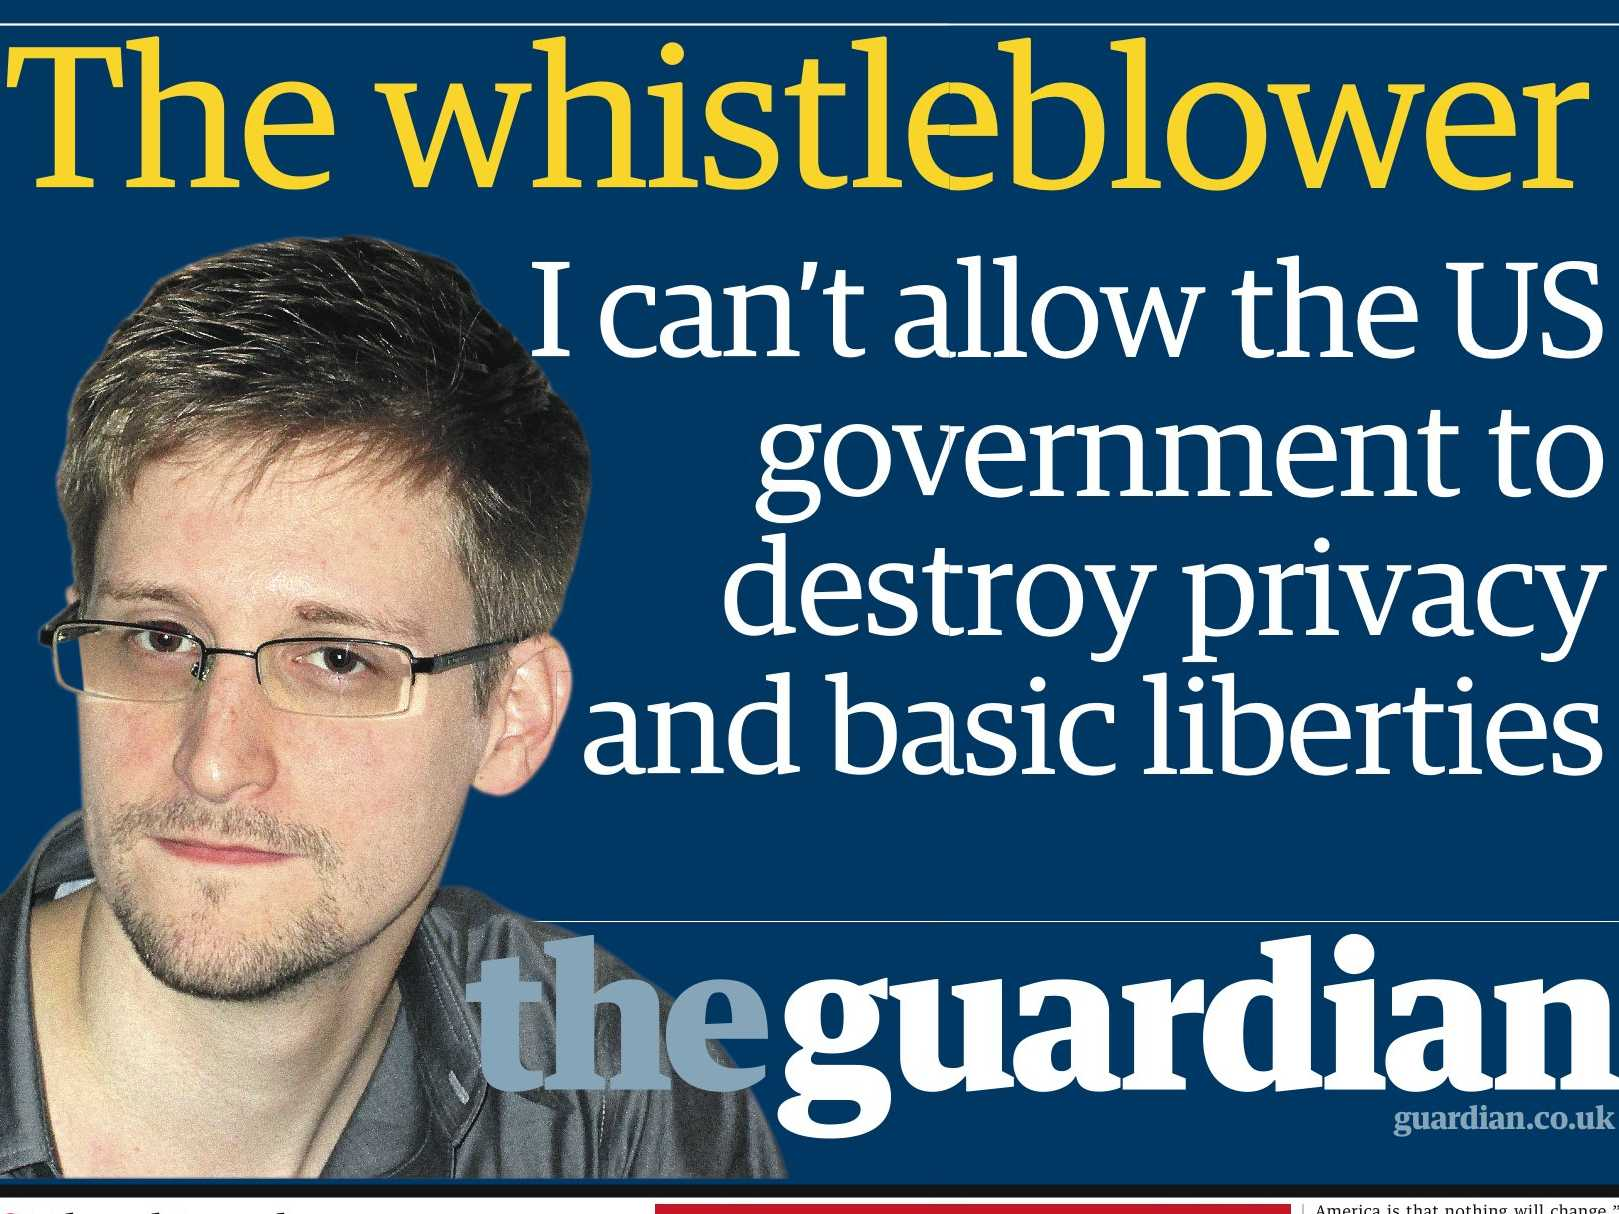 edward snowden wikiedward snowden film, edward snowden twitter, edward snowden russia, edward snowden kimdir, edward snowden girlfriend, edward snowden and lindsay mills, edward snowden wiki, edward snowden wikipedia, edward snowden фильм, edward snowden wife, edward snowden 2017, edward snowden 2016, edward snowden facebook, edward snowden biography, edward snowden interview, edward snowden moscow, edward snowden kino, edward snowden 2013, edward snowden now, edward snowden blog